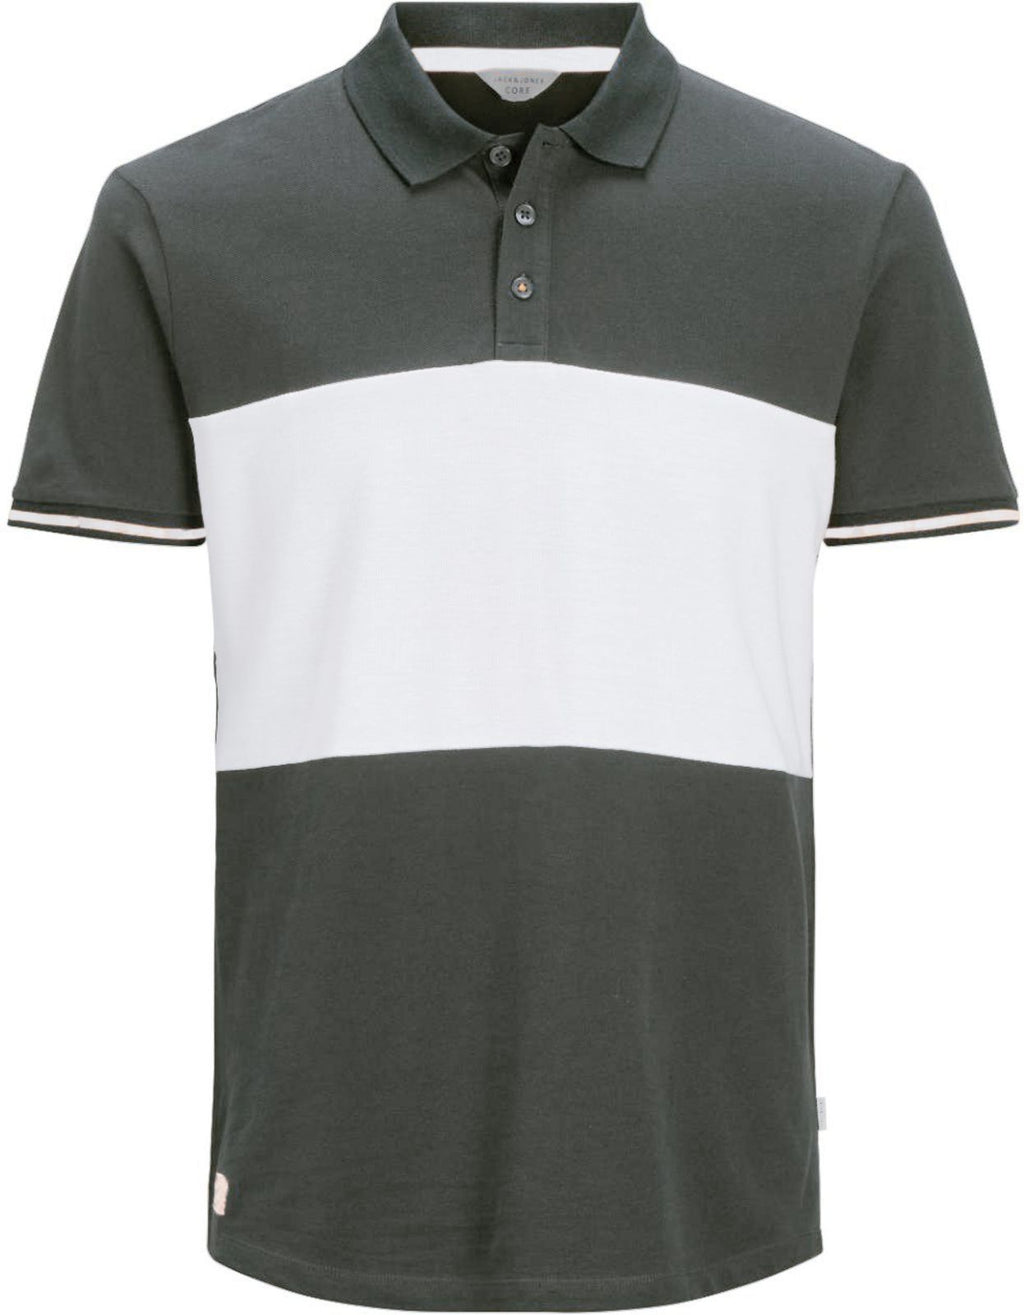 Jack & Jones Loop Polo Shirt Charcoal